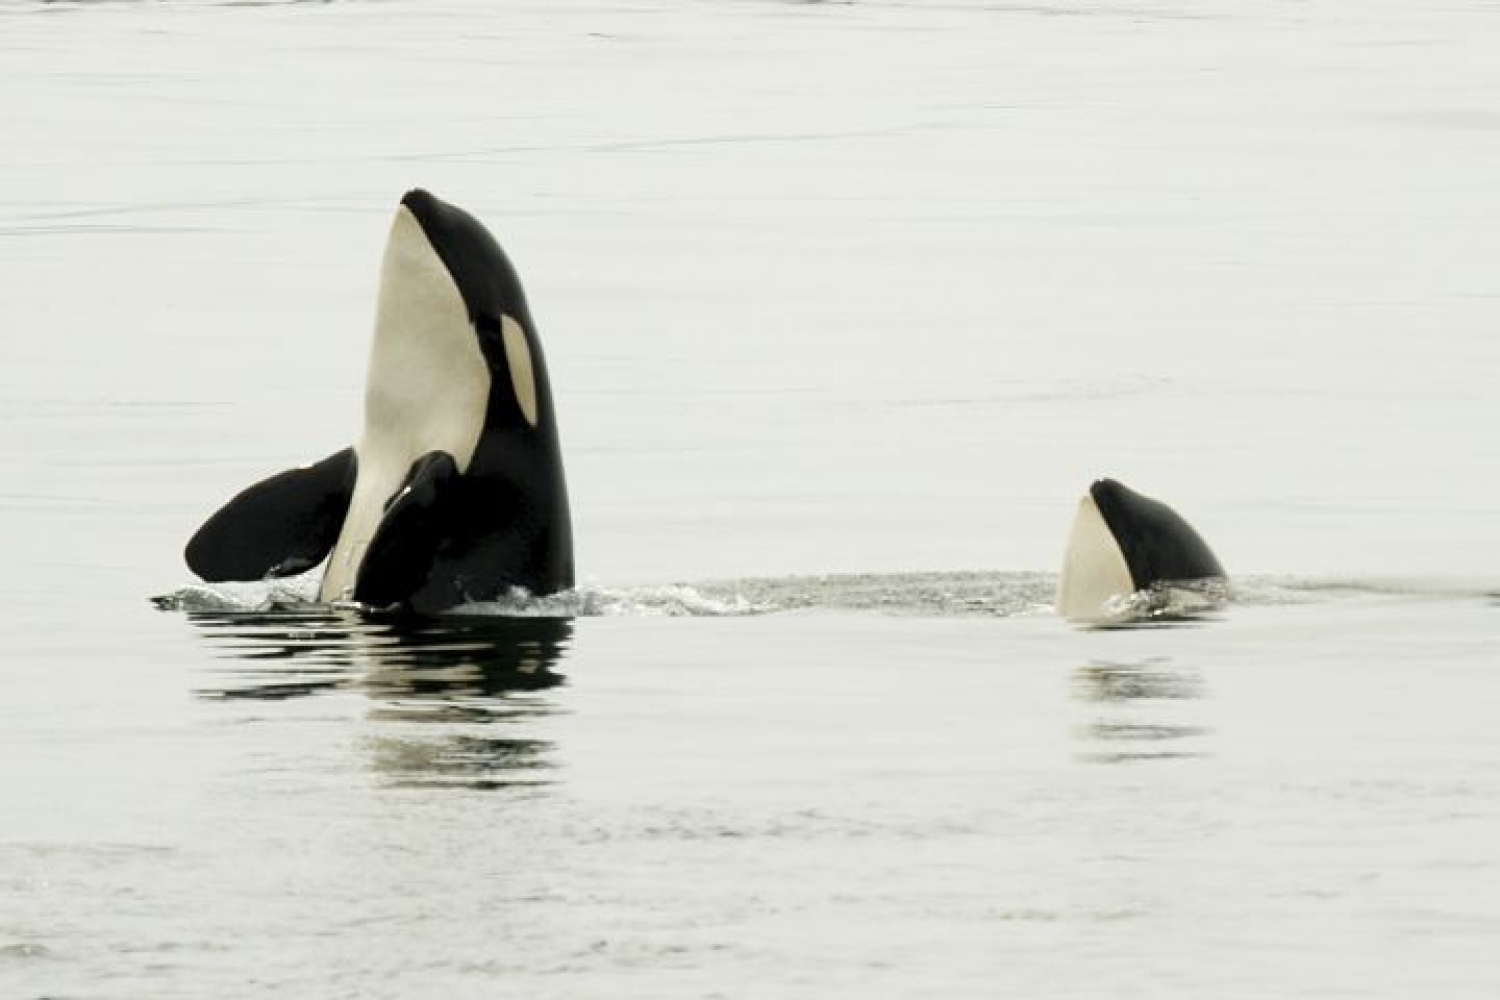 Orcas sticking their heads up from the water